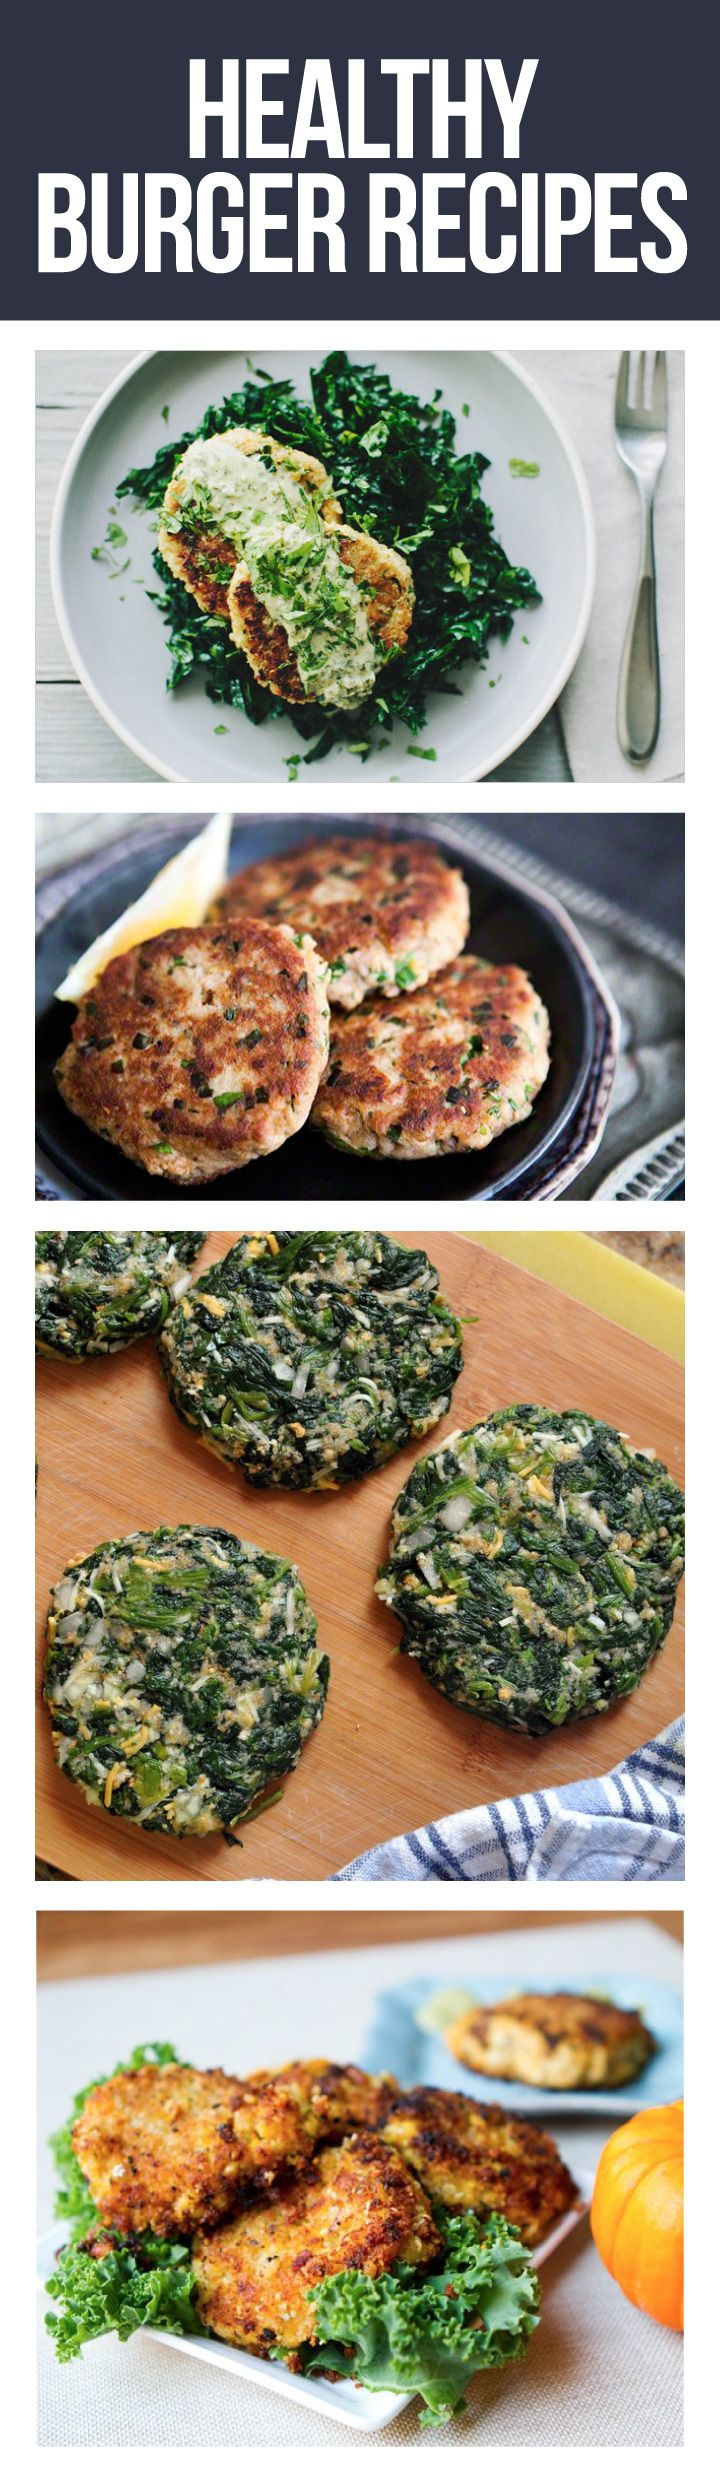 Upgrade your burger night with these healthy options!